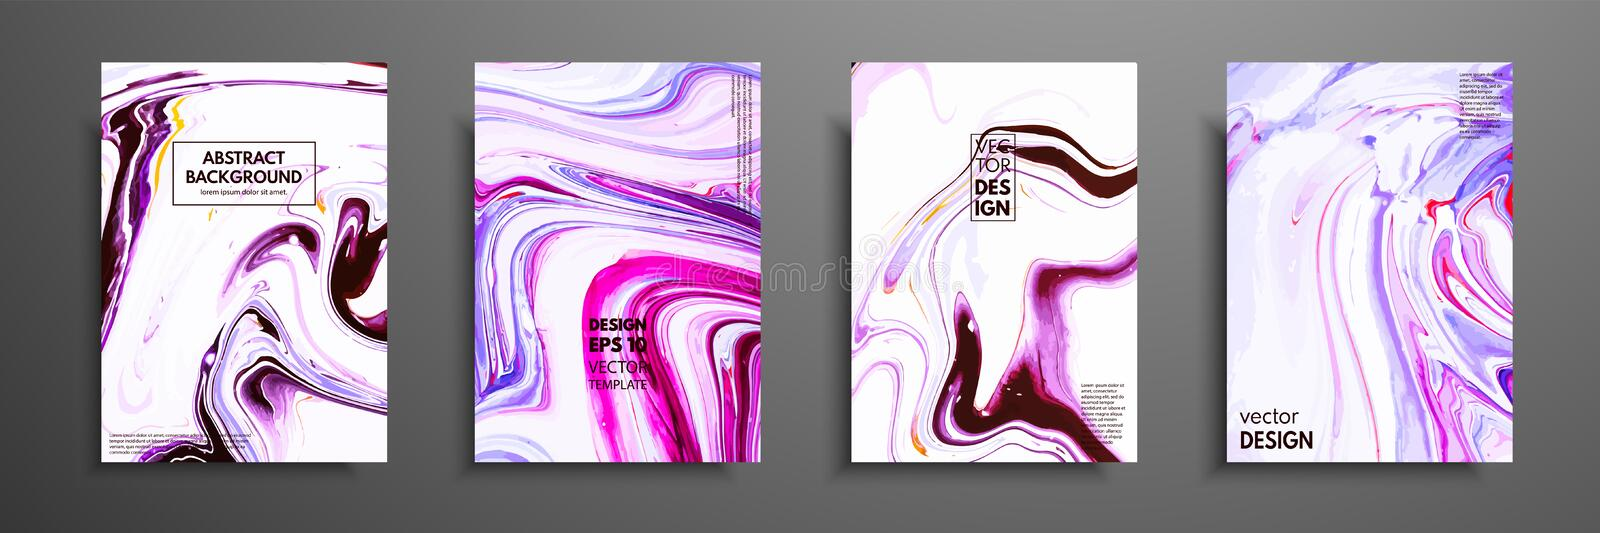 Mixture of acrylic paints. Modern artwork. Trendy design. Marble effect painting. Graphic hand drawn design for cover royalty free illustration